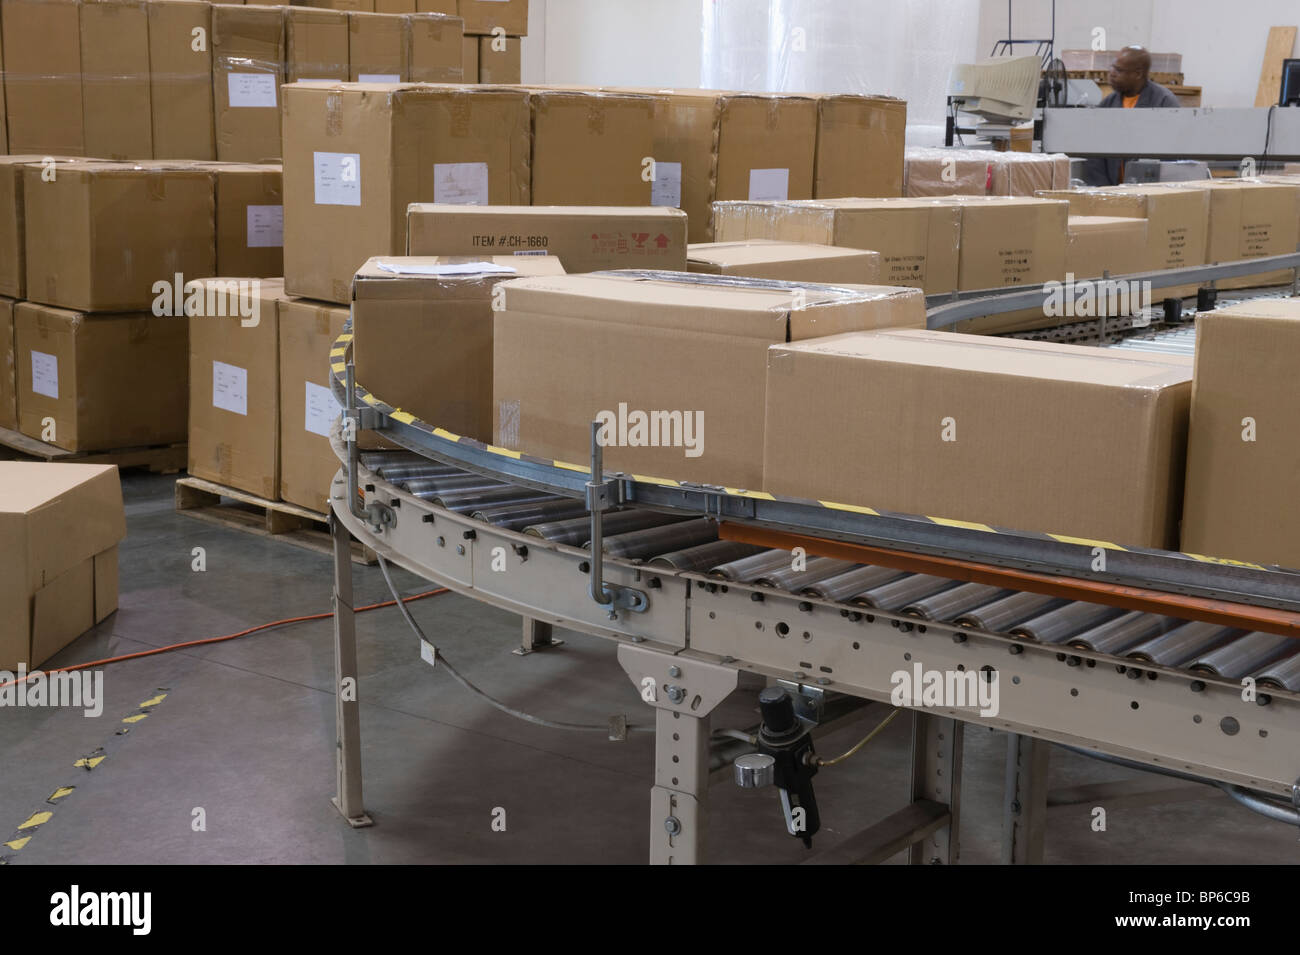 Cardboard boxes on conveyor belt in distribution warehouse - Stock Image